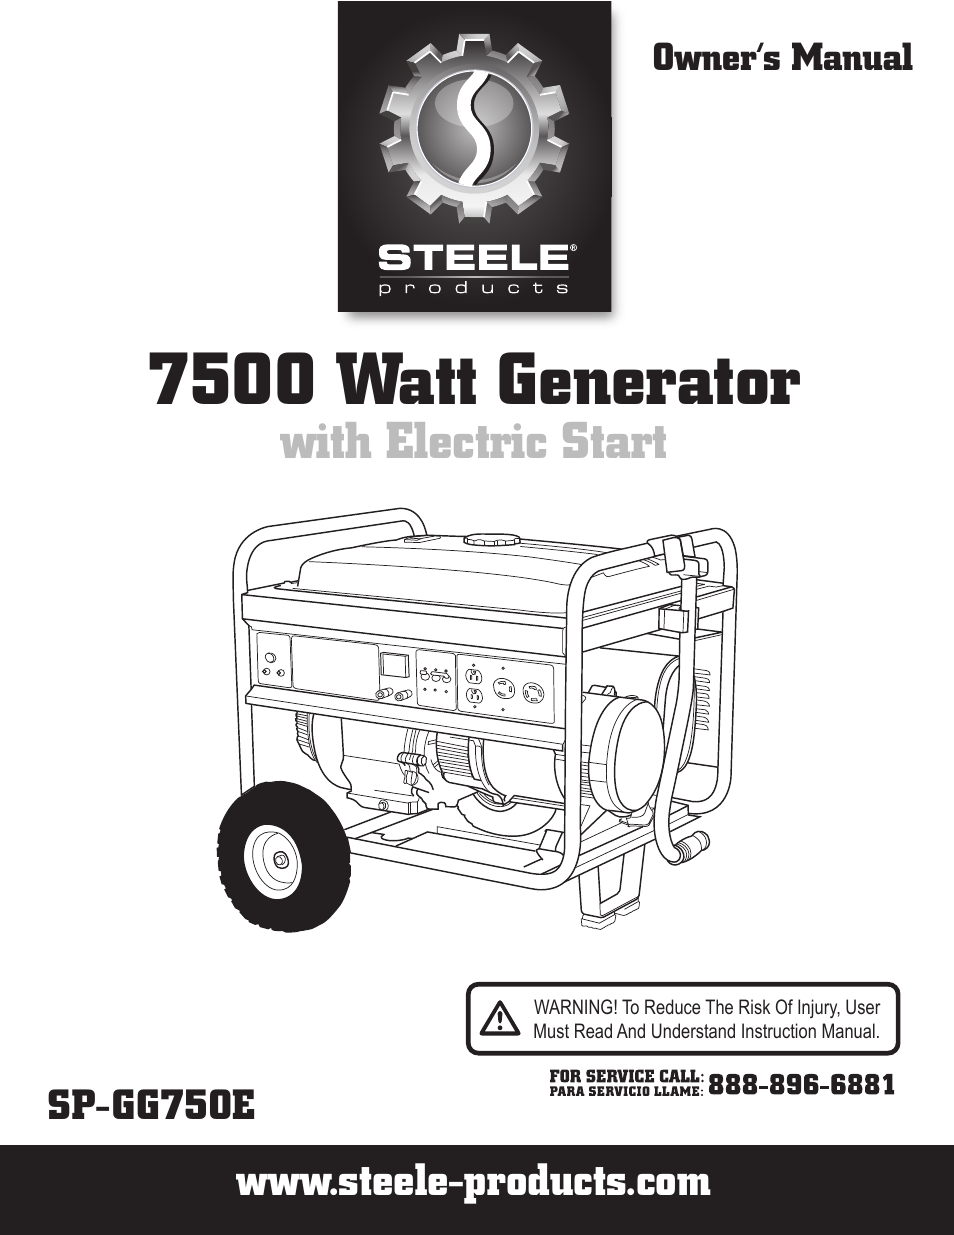 Steele Generator Wiring Diagram 3 Phase Generac Image Not Found Or Type Unknown Model 1313 0 Genuine Parts Rh Searspartsdirect Com Plug